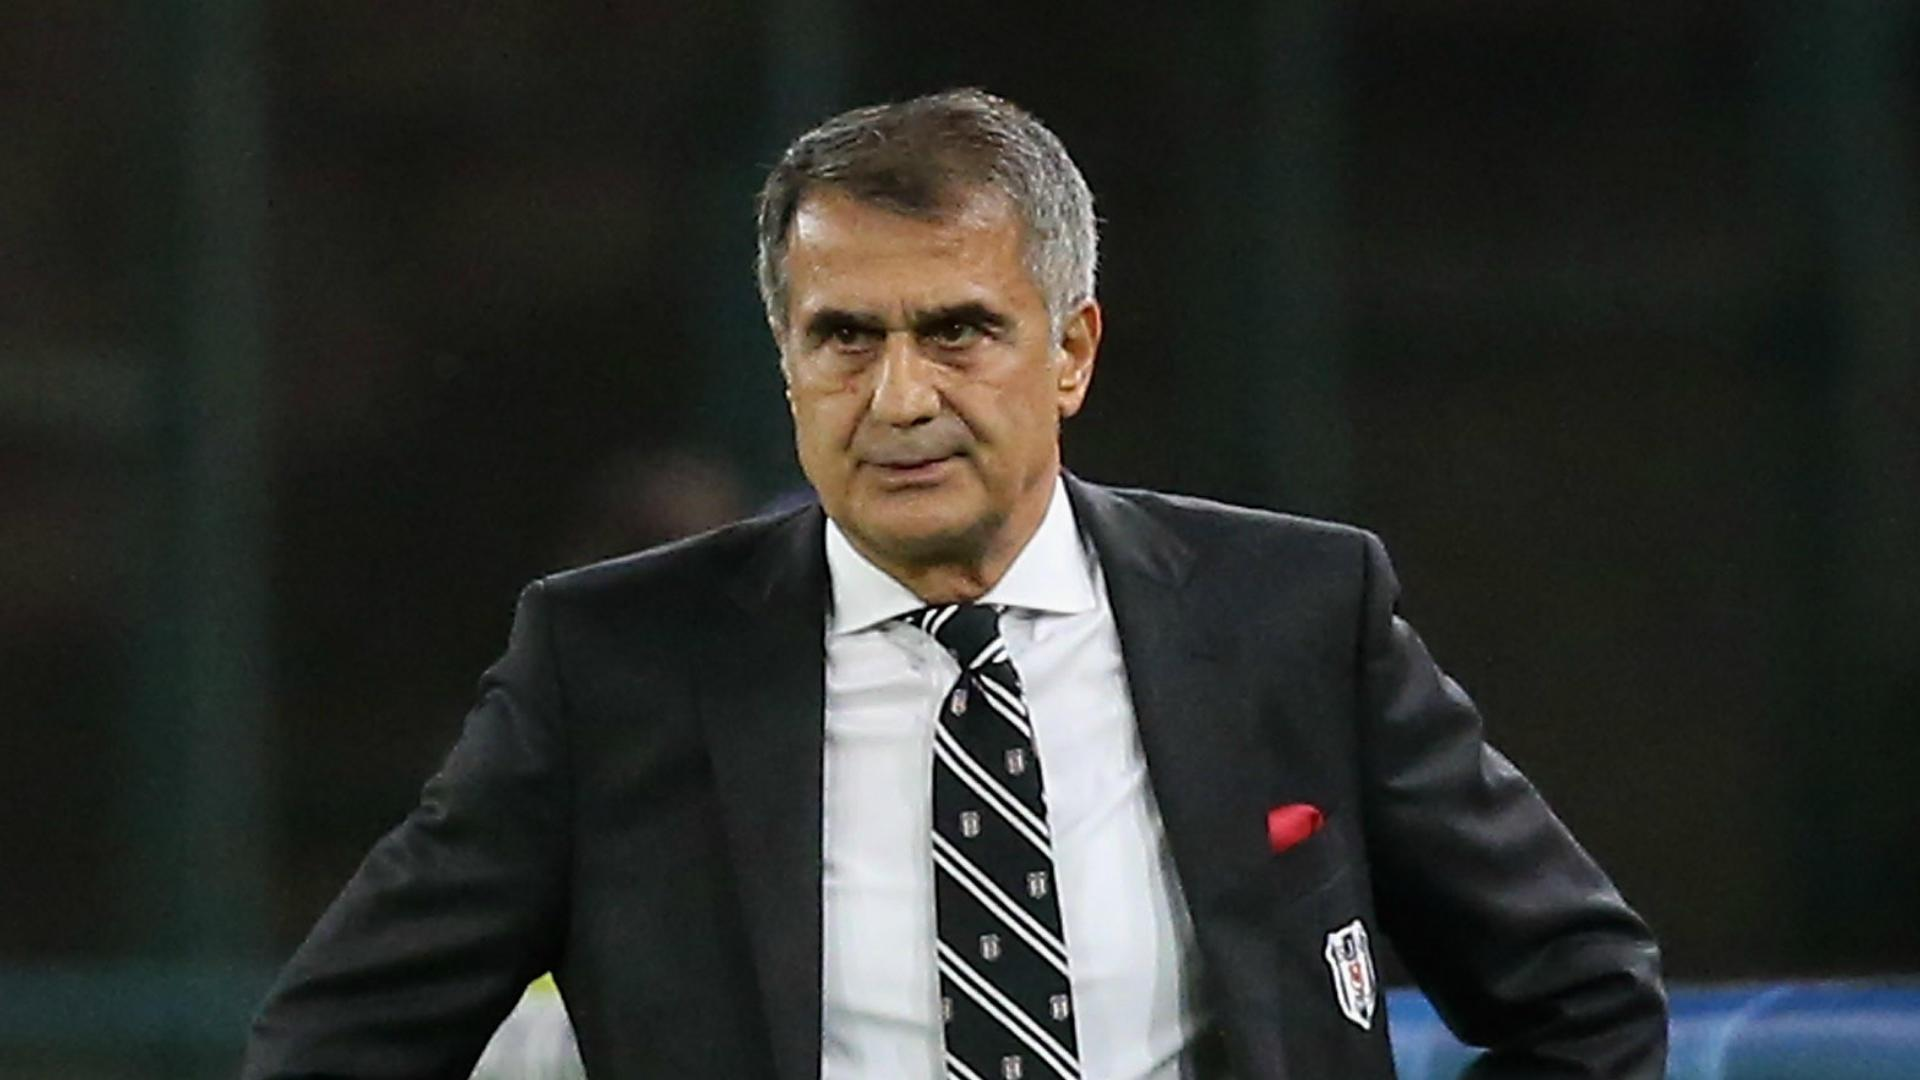 Semifinal abandoned after Besiktas coach injured